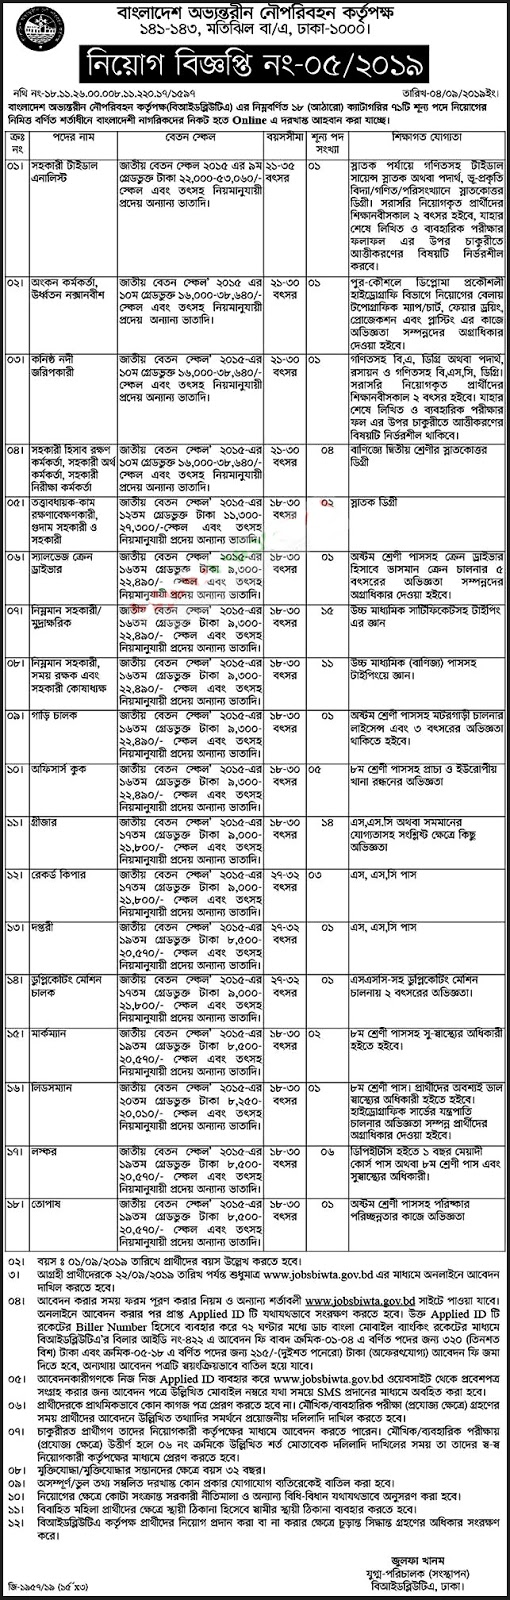 Bangladesh Inland Water Transport Authority (BIWTA) Job Circular